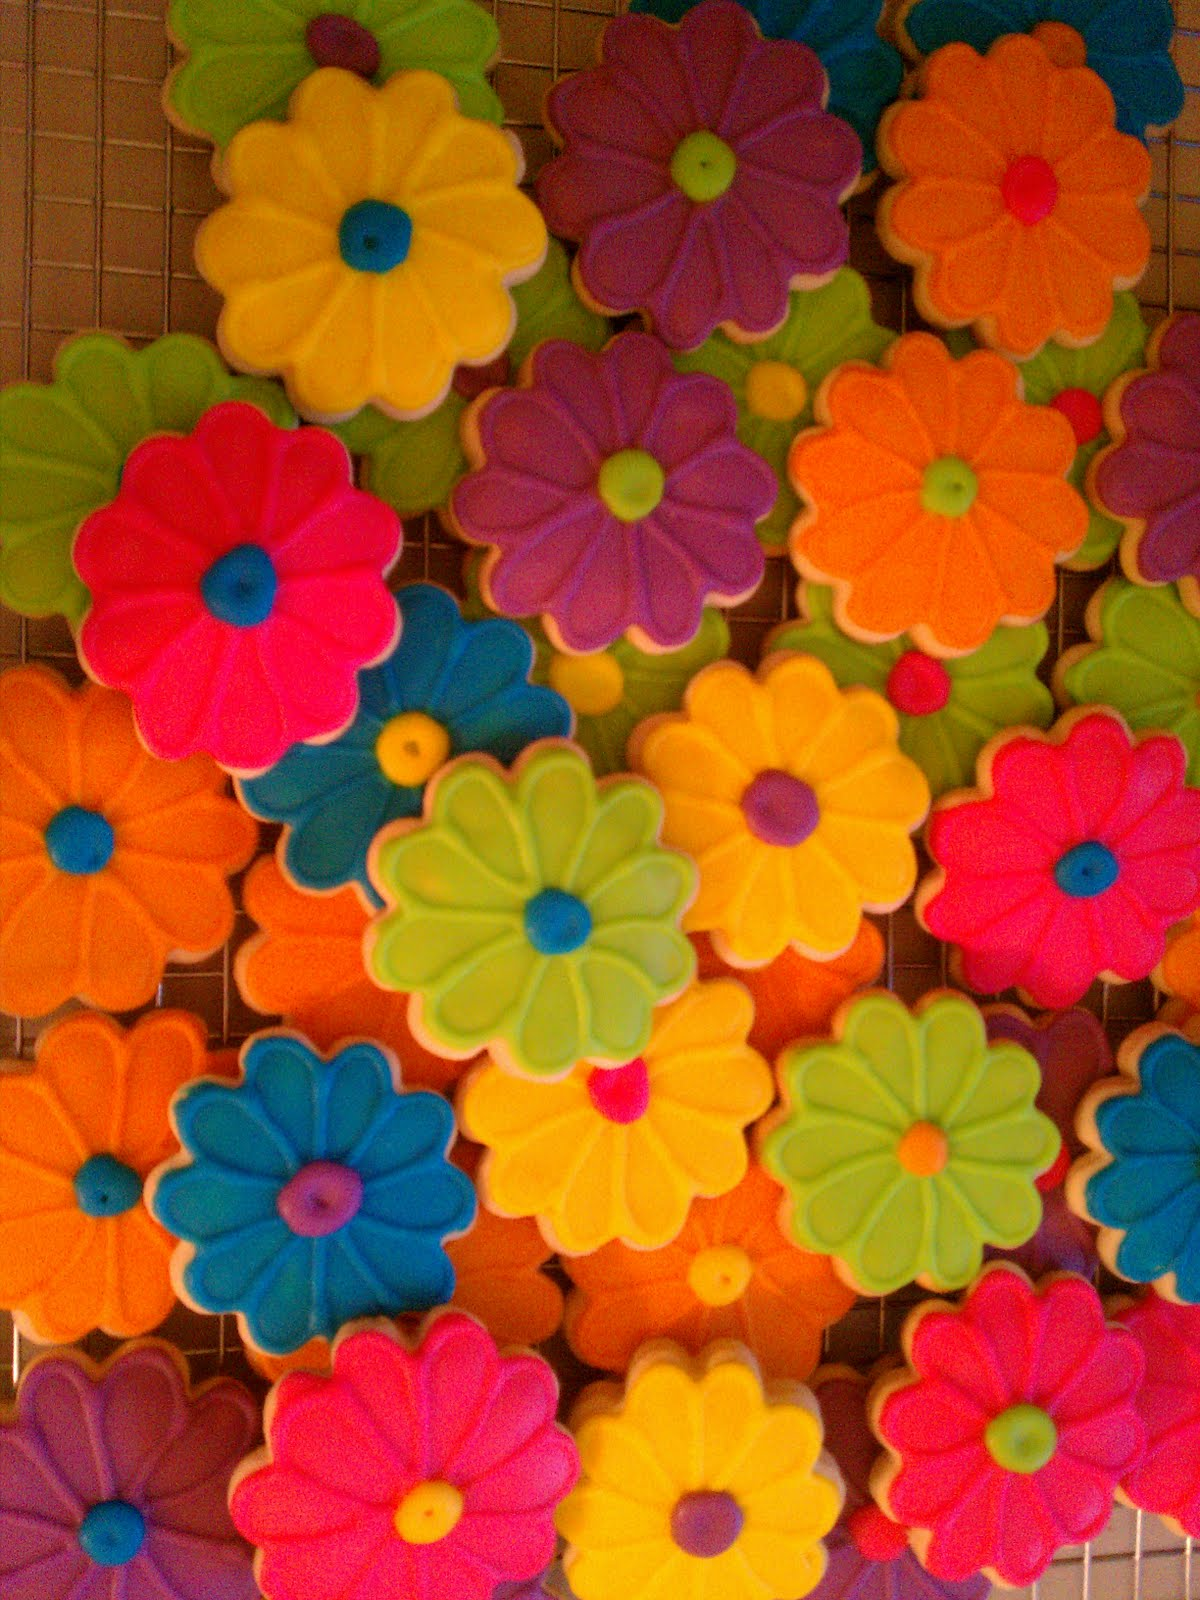 Kc S Creations My Favorites Bright Colorful Flowers